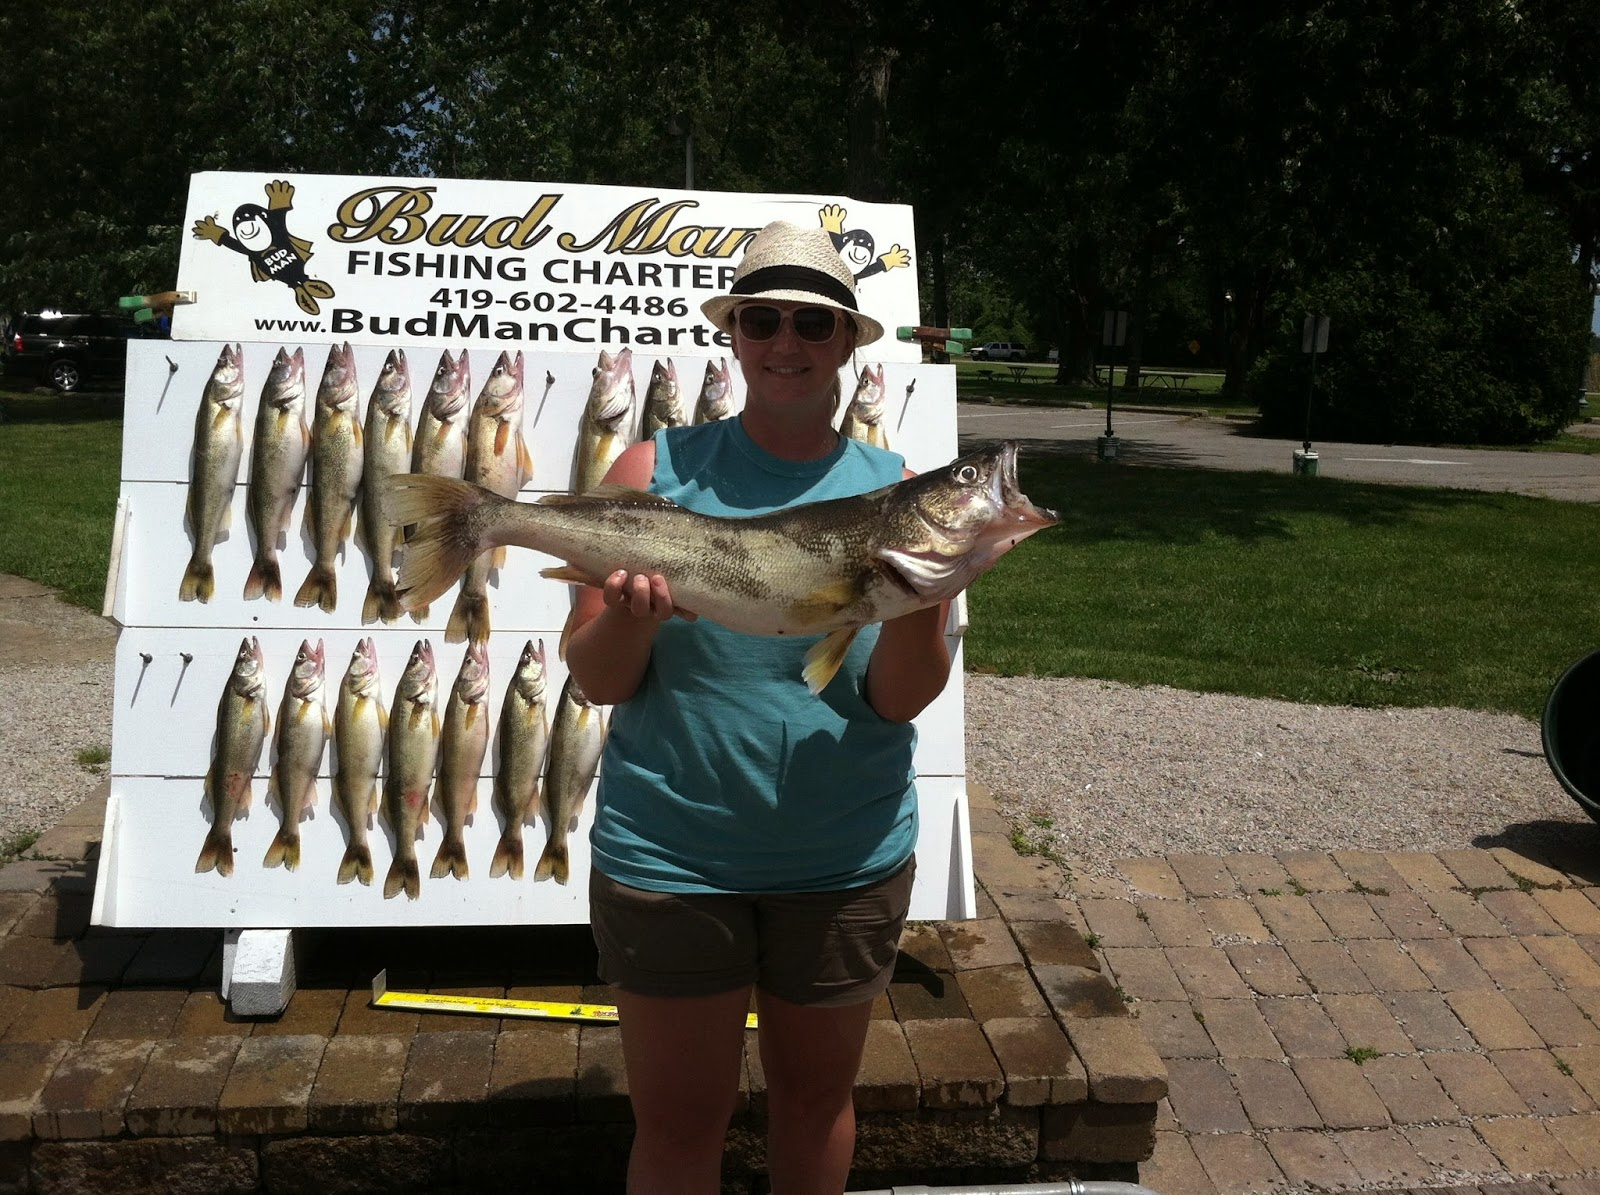 Lake erie walleye fishing reports east of pelee island 6 30 for Odnr fishing report